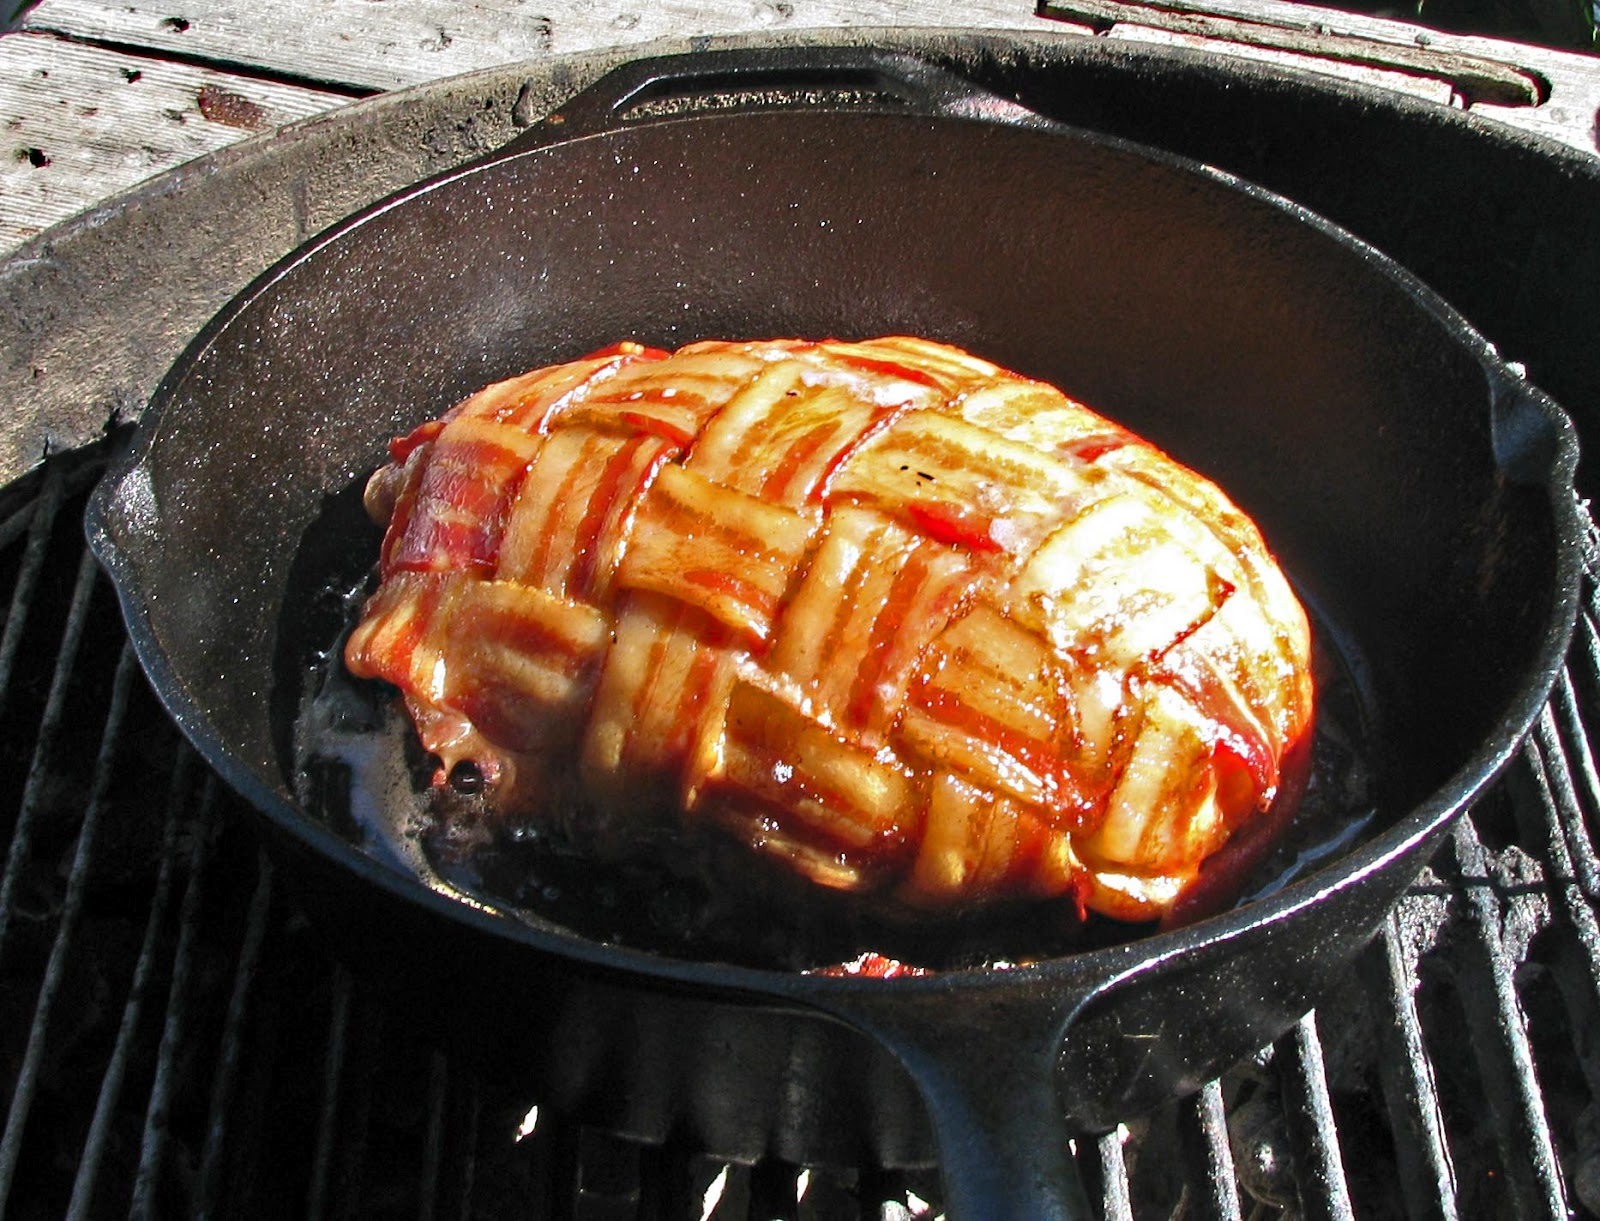 Mad Meat Genius Grilled Meatloaf Weber Trivet Barbeque Is Comfort Food At The Chilebrown Household It Simple And Easy To Make Cooking In Gives A Small Kiss Of Smoke That